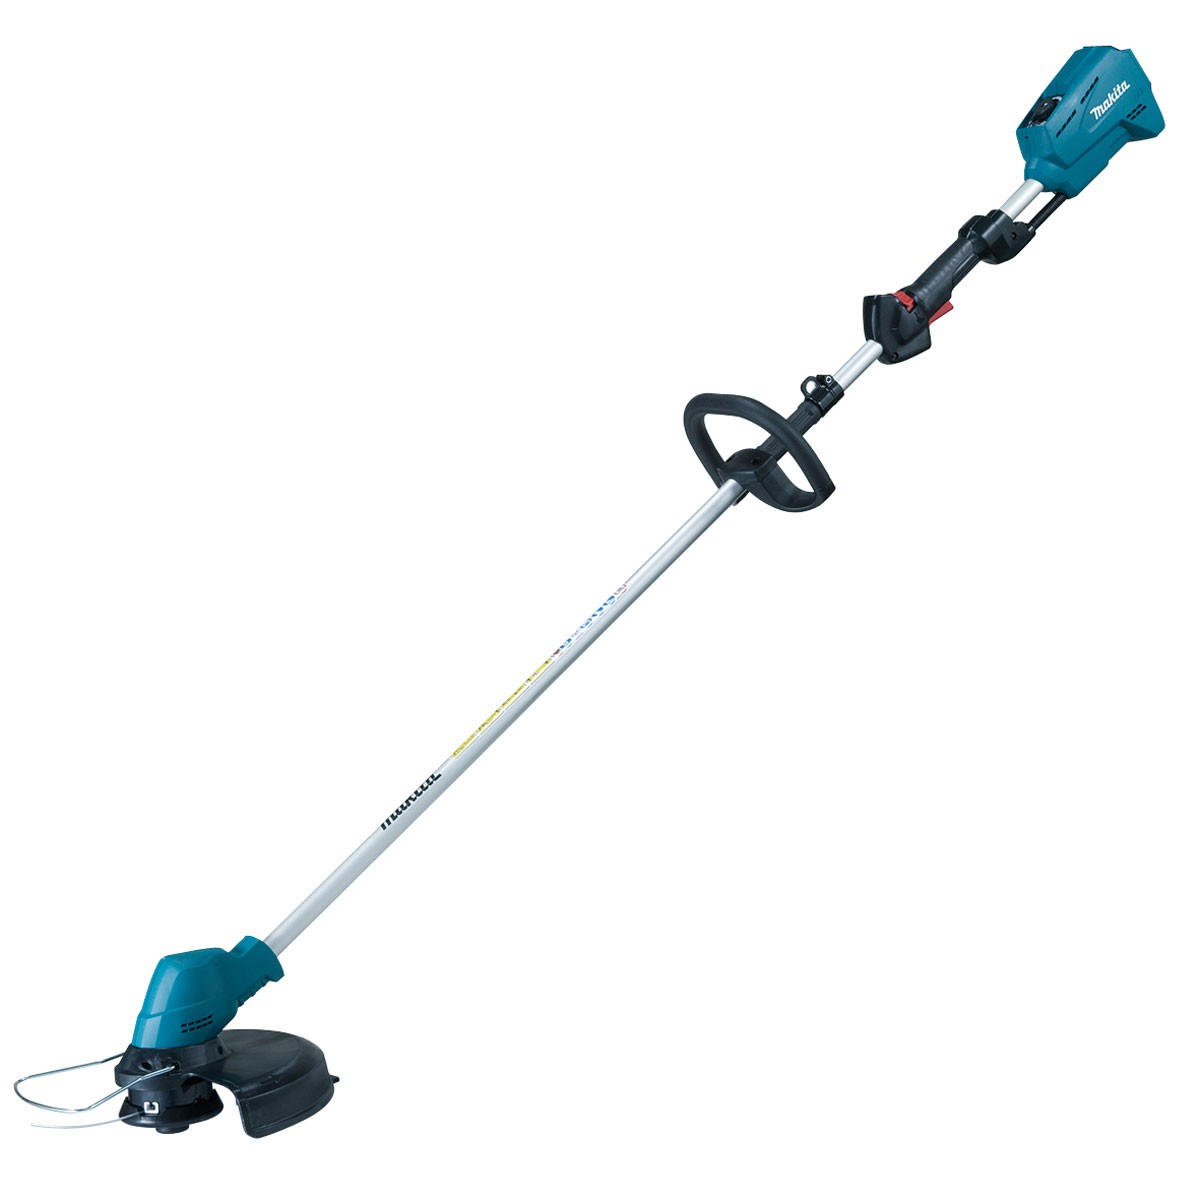 Makita DUR182LZ 18v LXT Cordless Grass Line Trimmer Strimmer Body Only